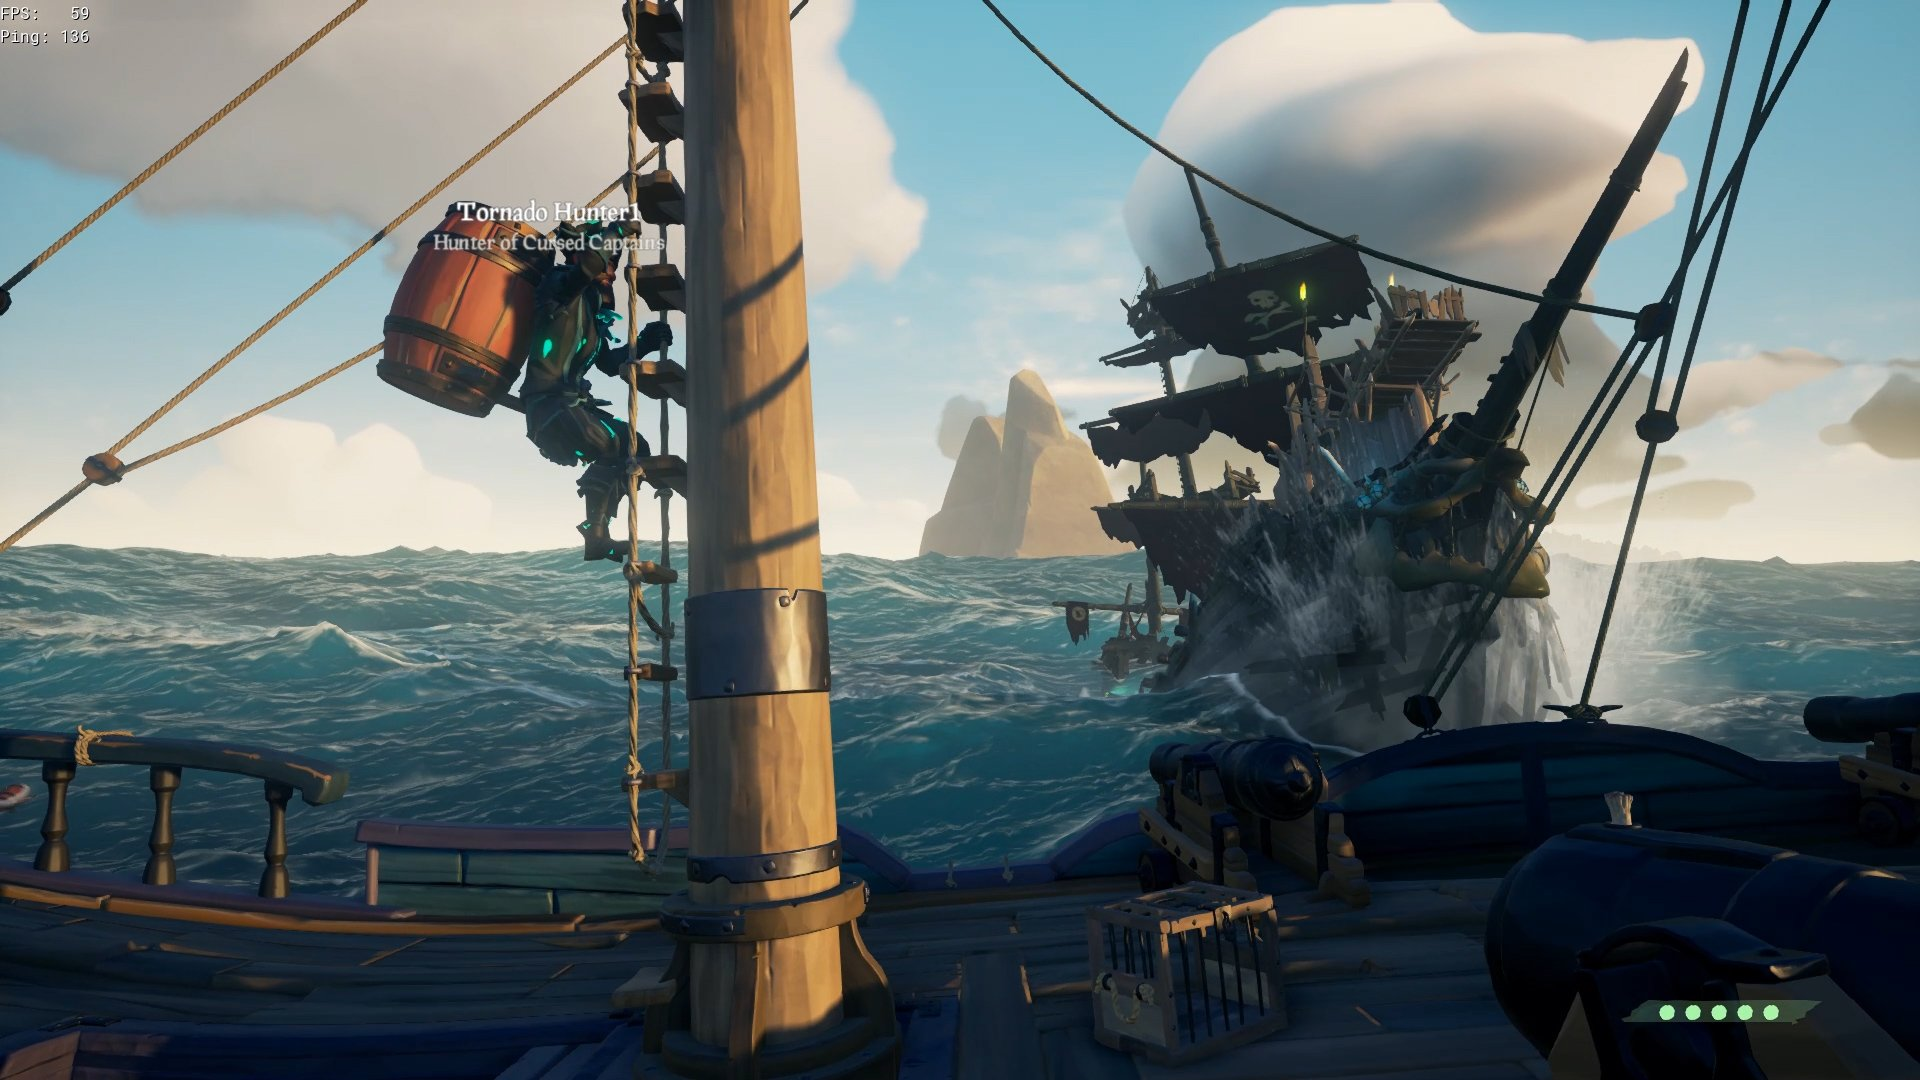 https://d1lss44hh2trtw.cloudfront.net/assets/editorial/2018/08/skeleton-ship-appearing-sea-of-thieves.jpg